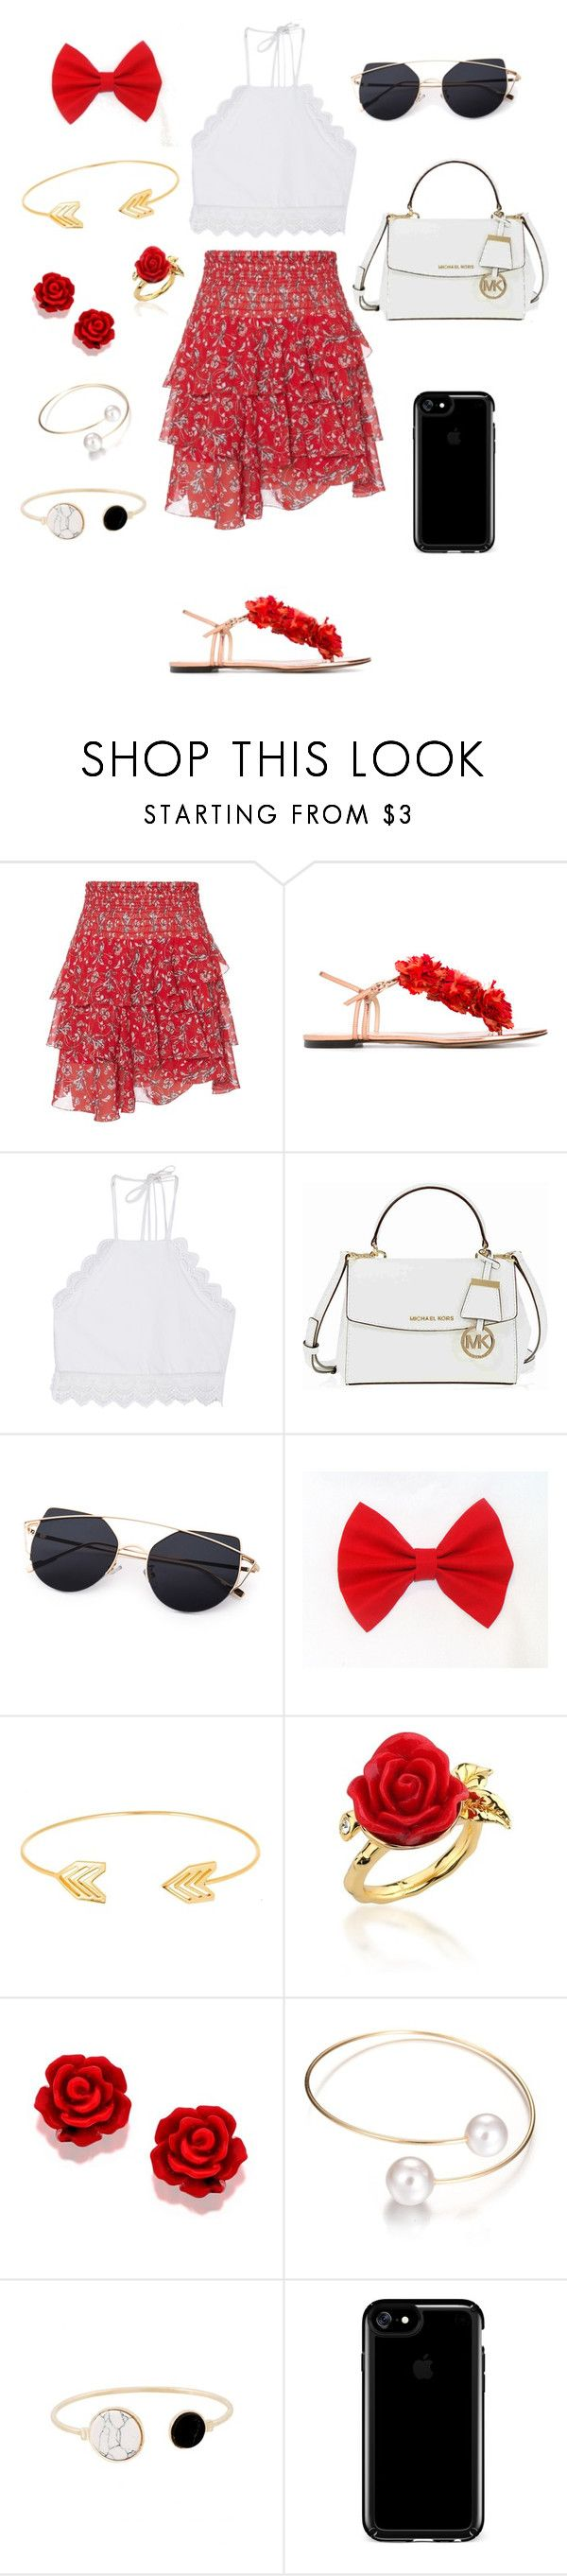 """""""Untitled #93"""" by samanthapretor ❤ liked on Polyvore featuring Exclusive for Intermix, Charlotte Olympia, Front Row Shop, Michael Kors, Lord & Taylor, Disney Couture and Speck"""